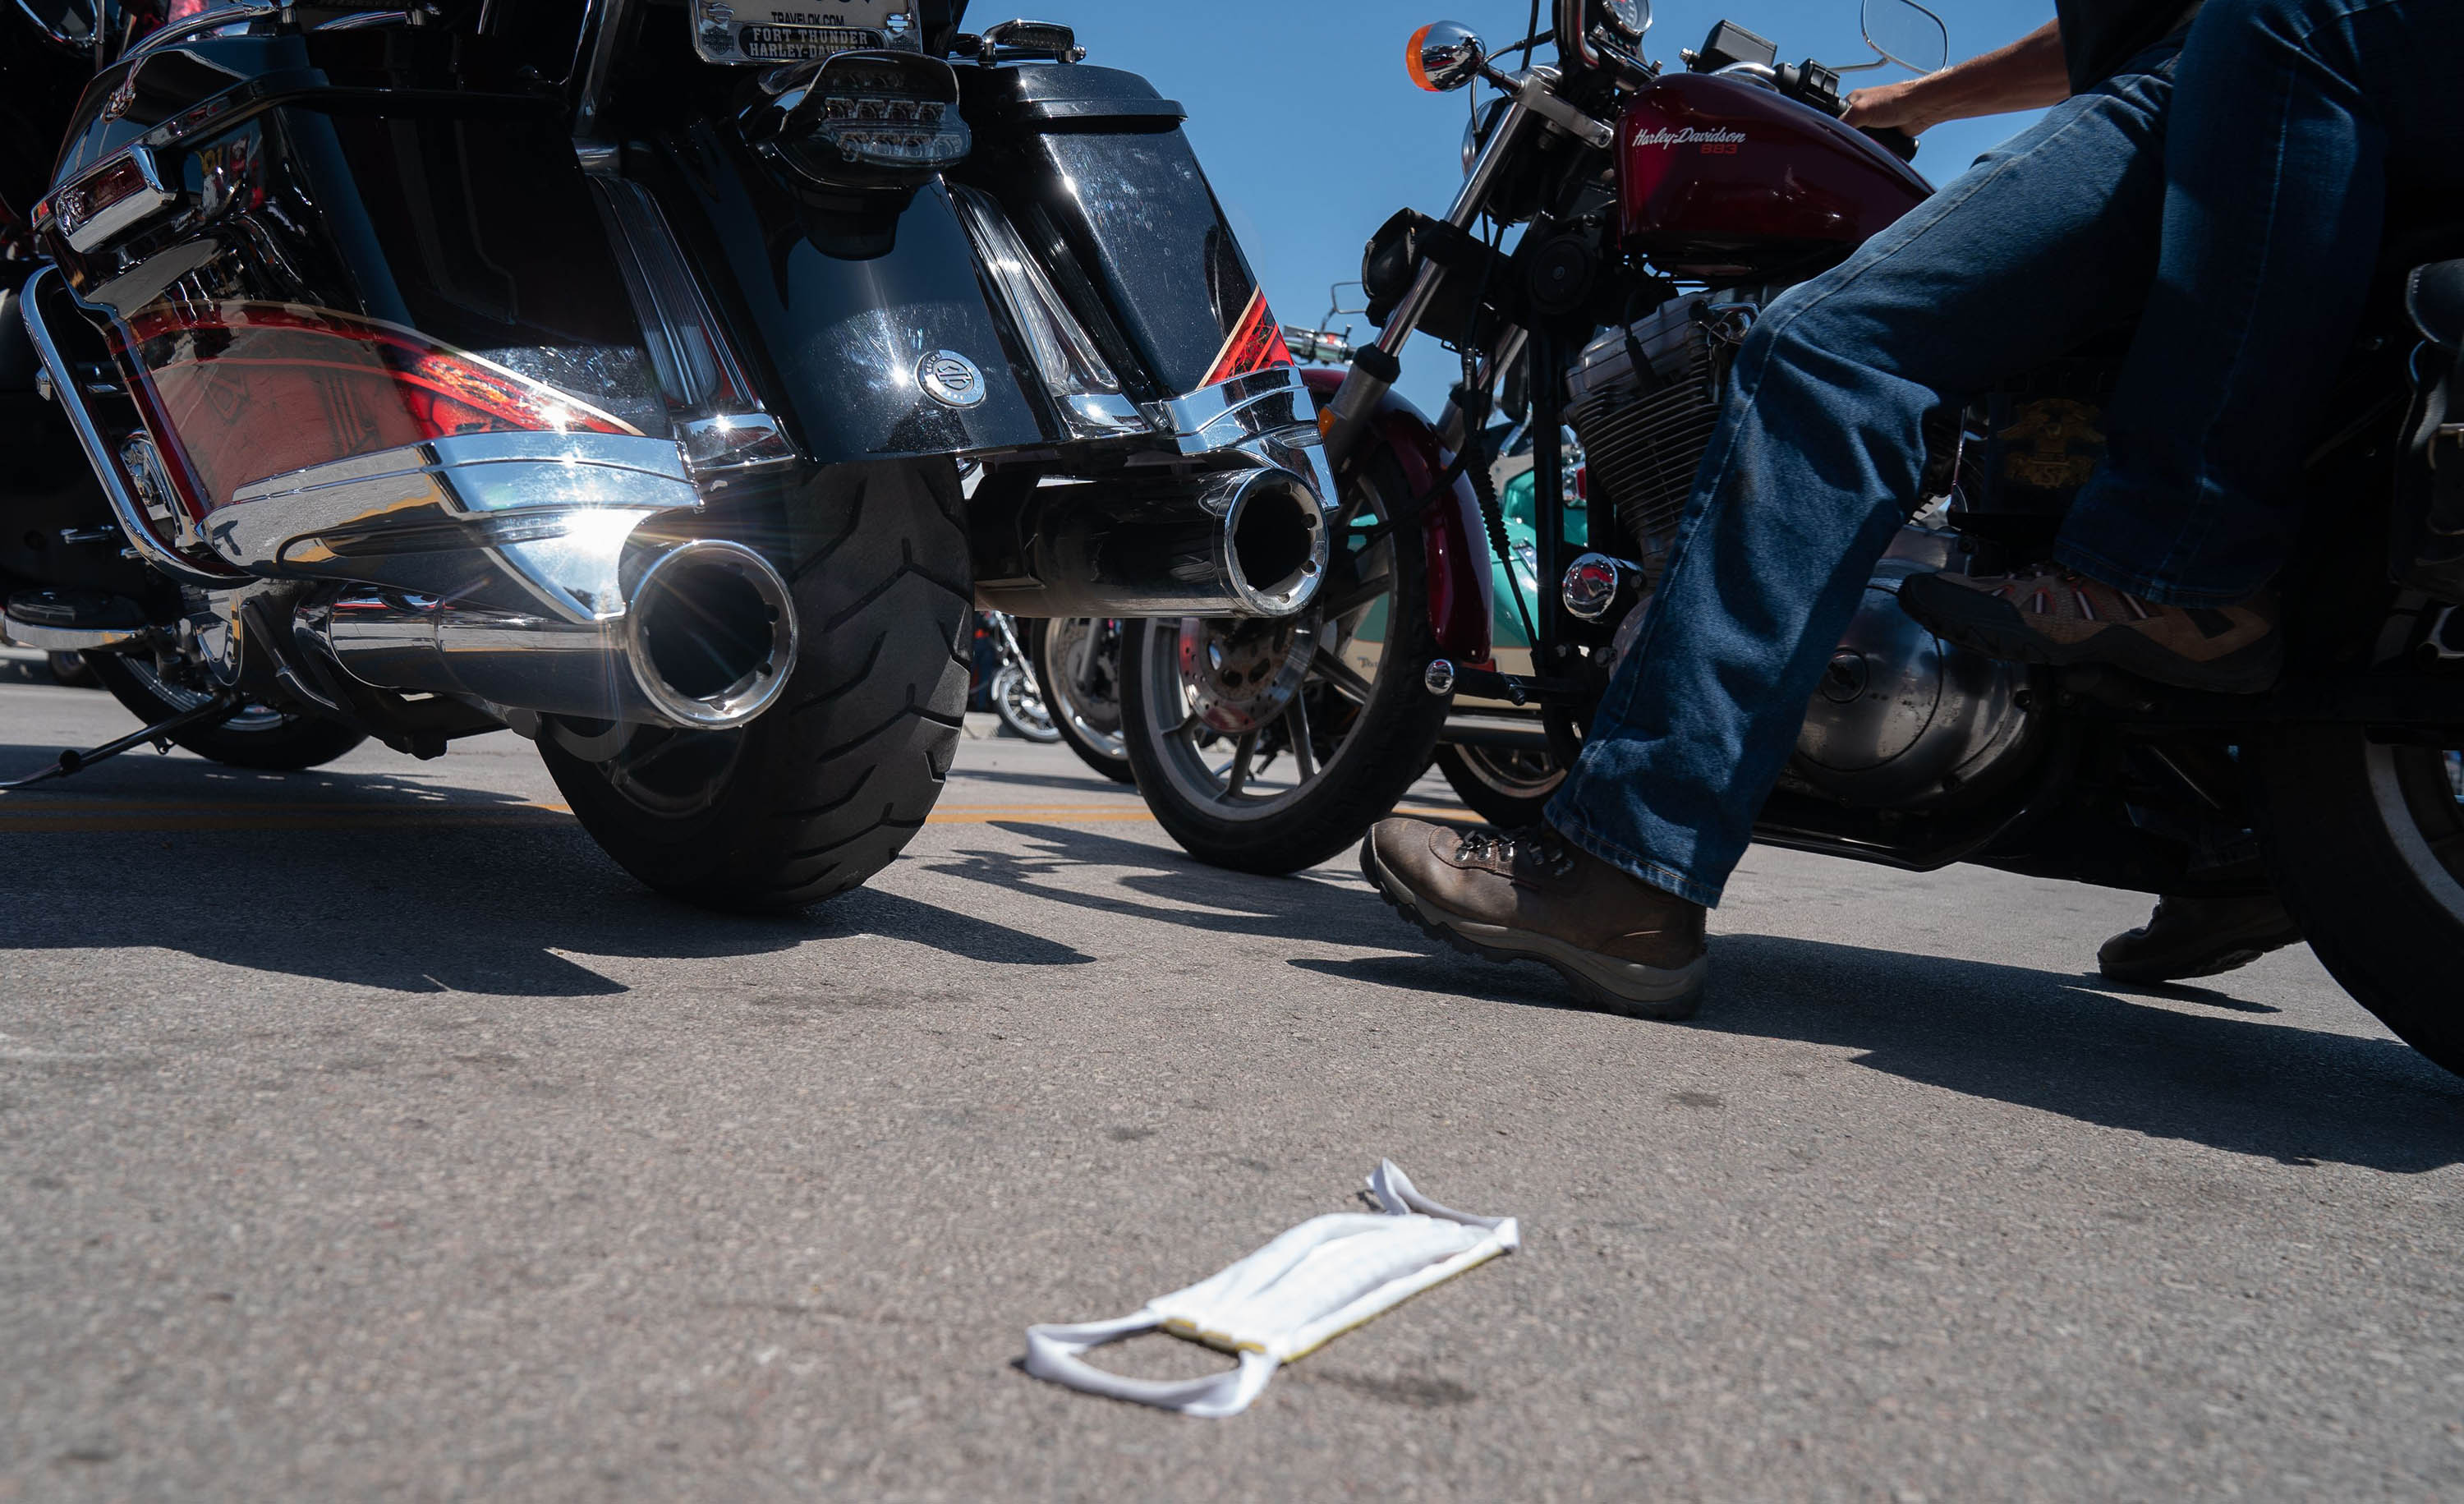 A man rides past a discarded face mask during the 80th Annual Sturgis Motorcycle Rally on August 8 in Sturgis, South Dakota.